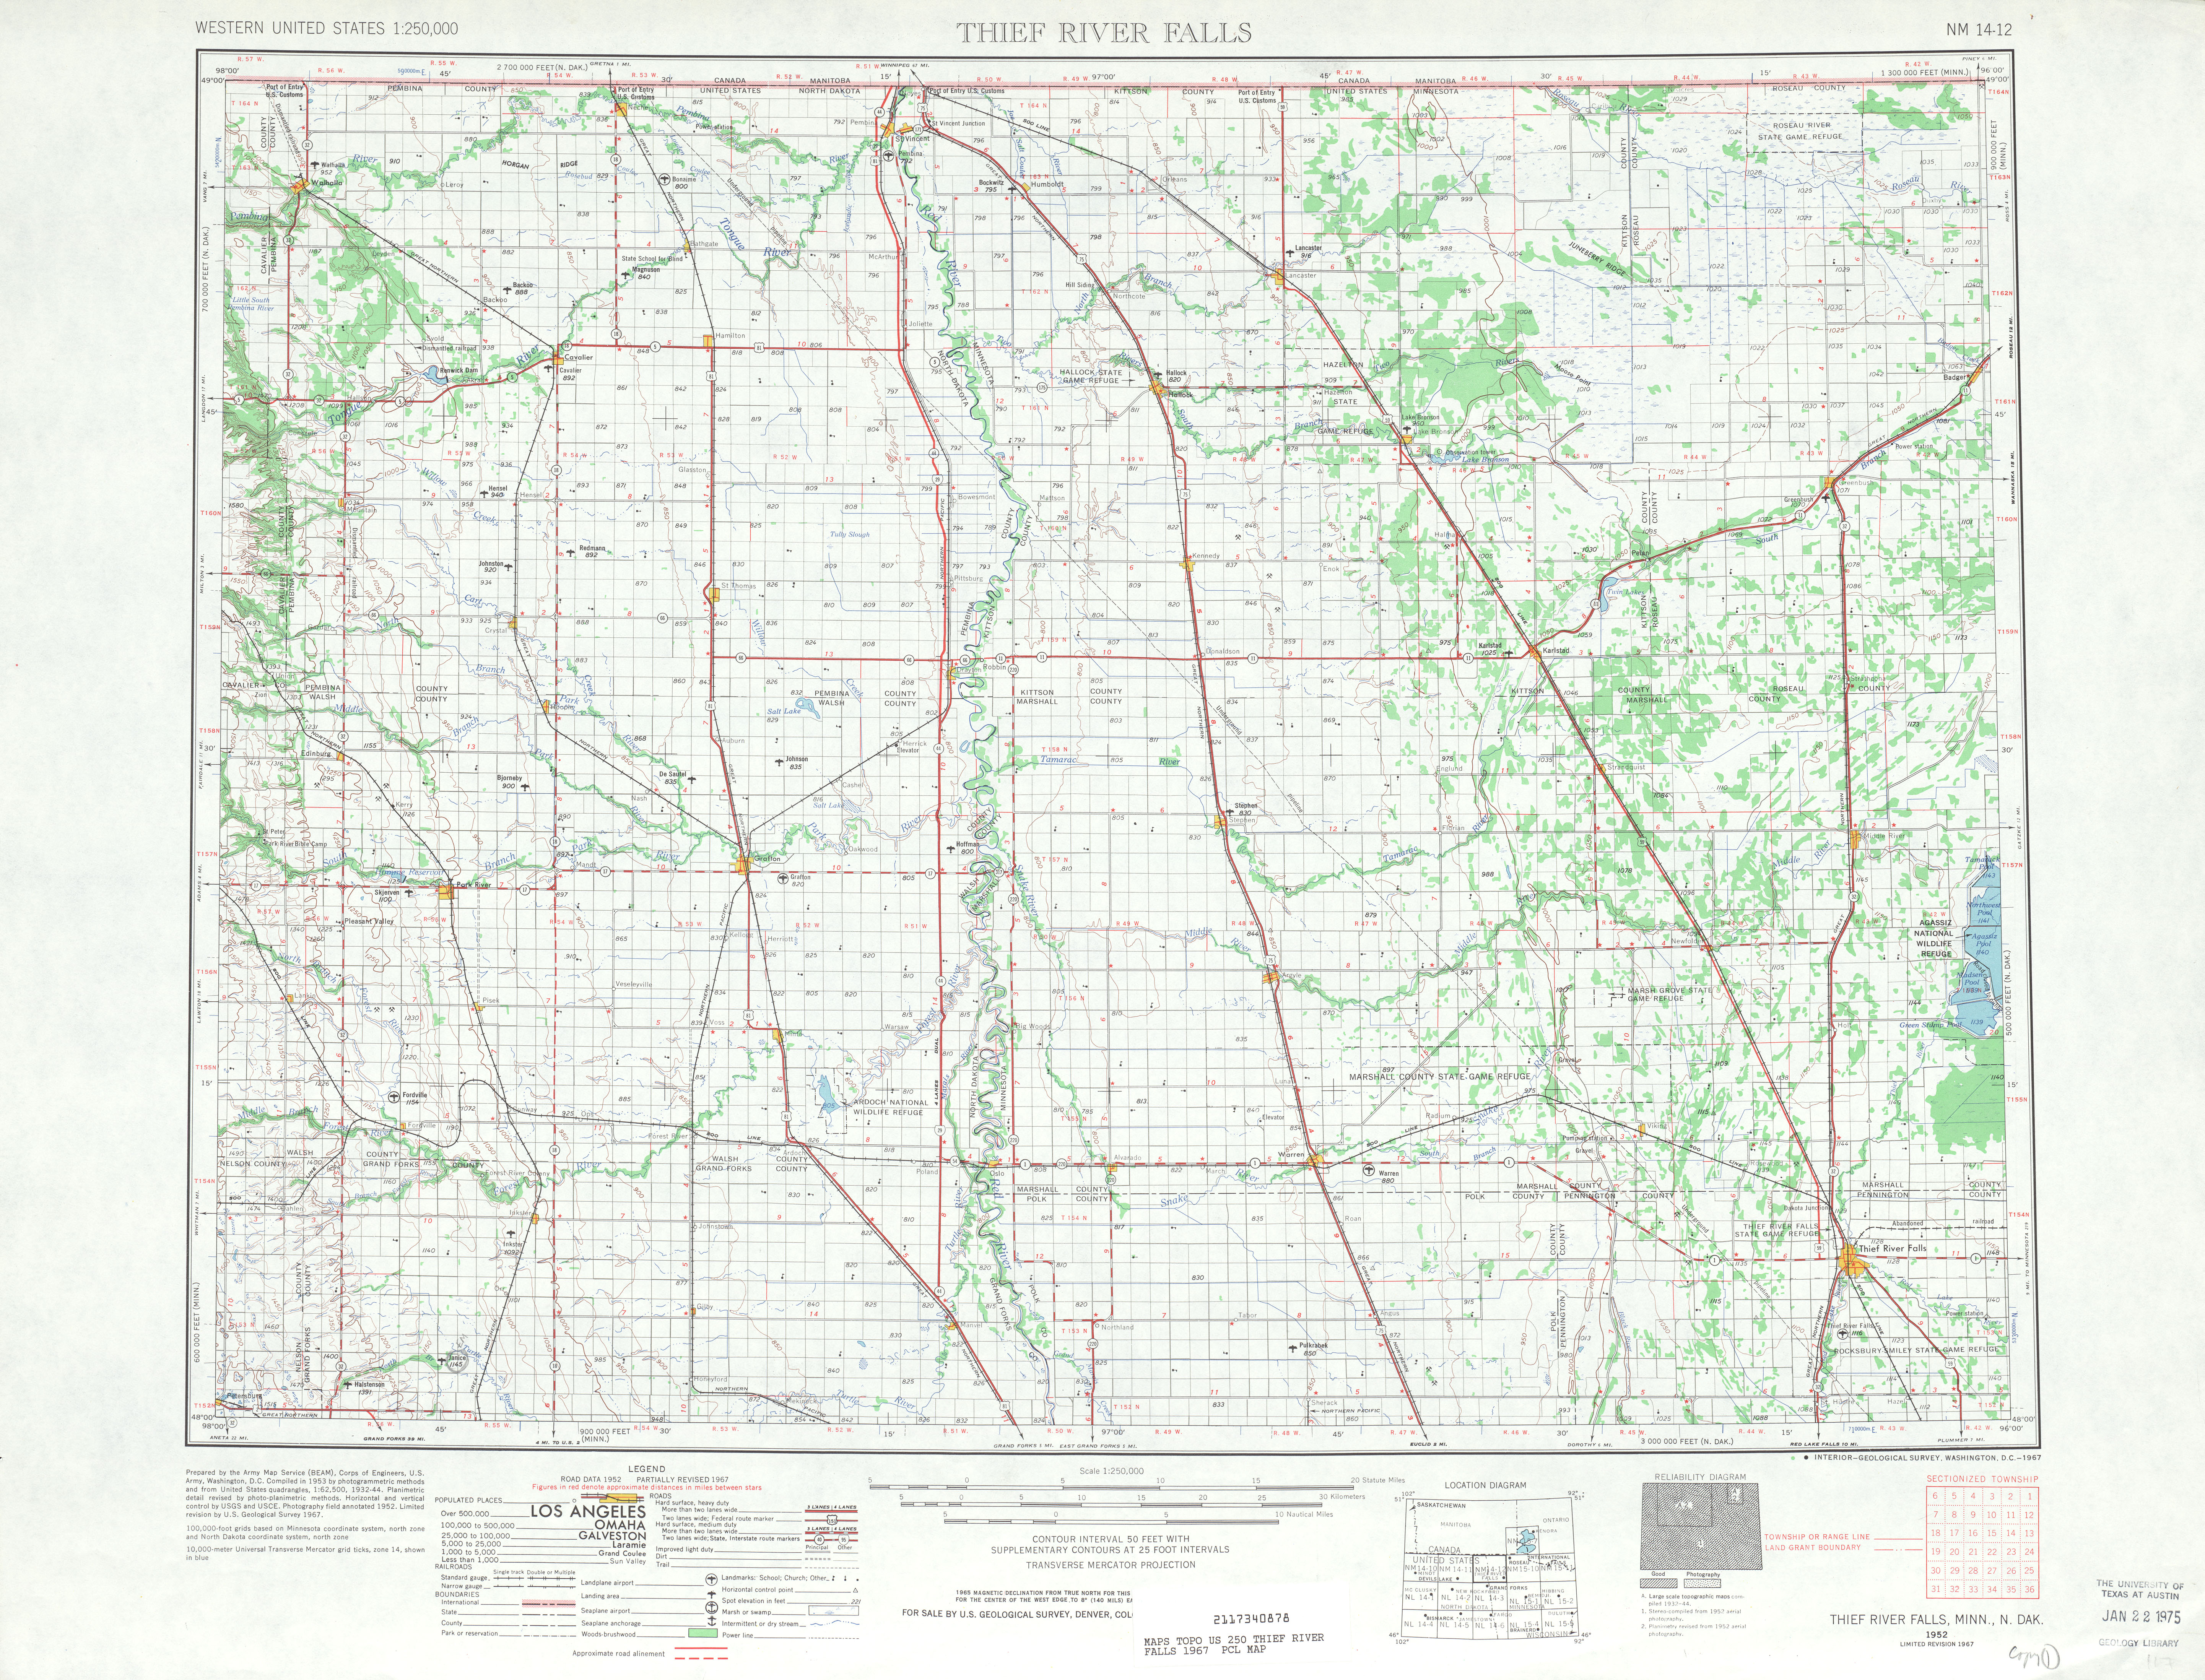 Thief River Falls Topographic Map Sheet, United States 1967